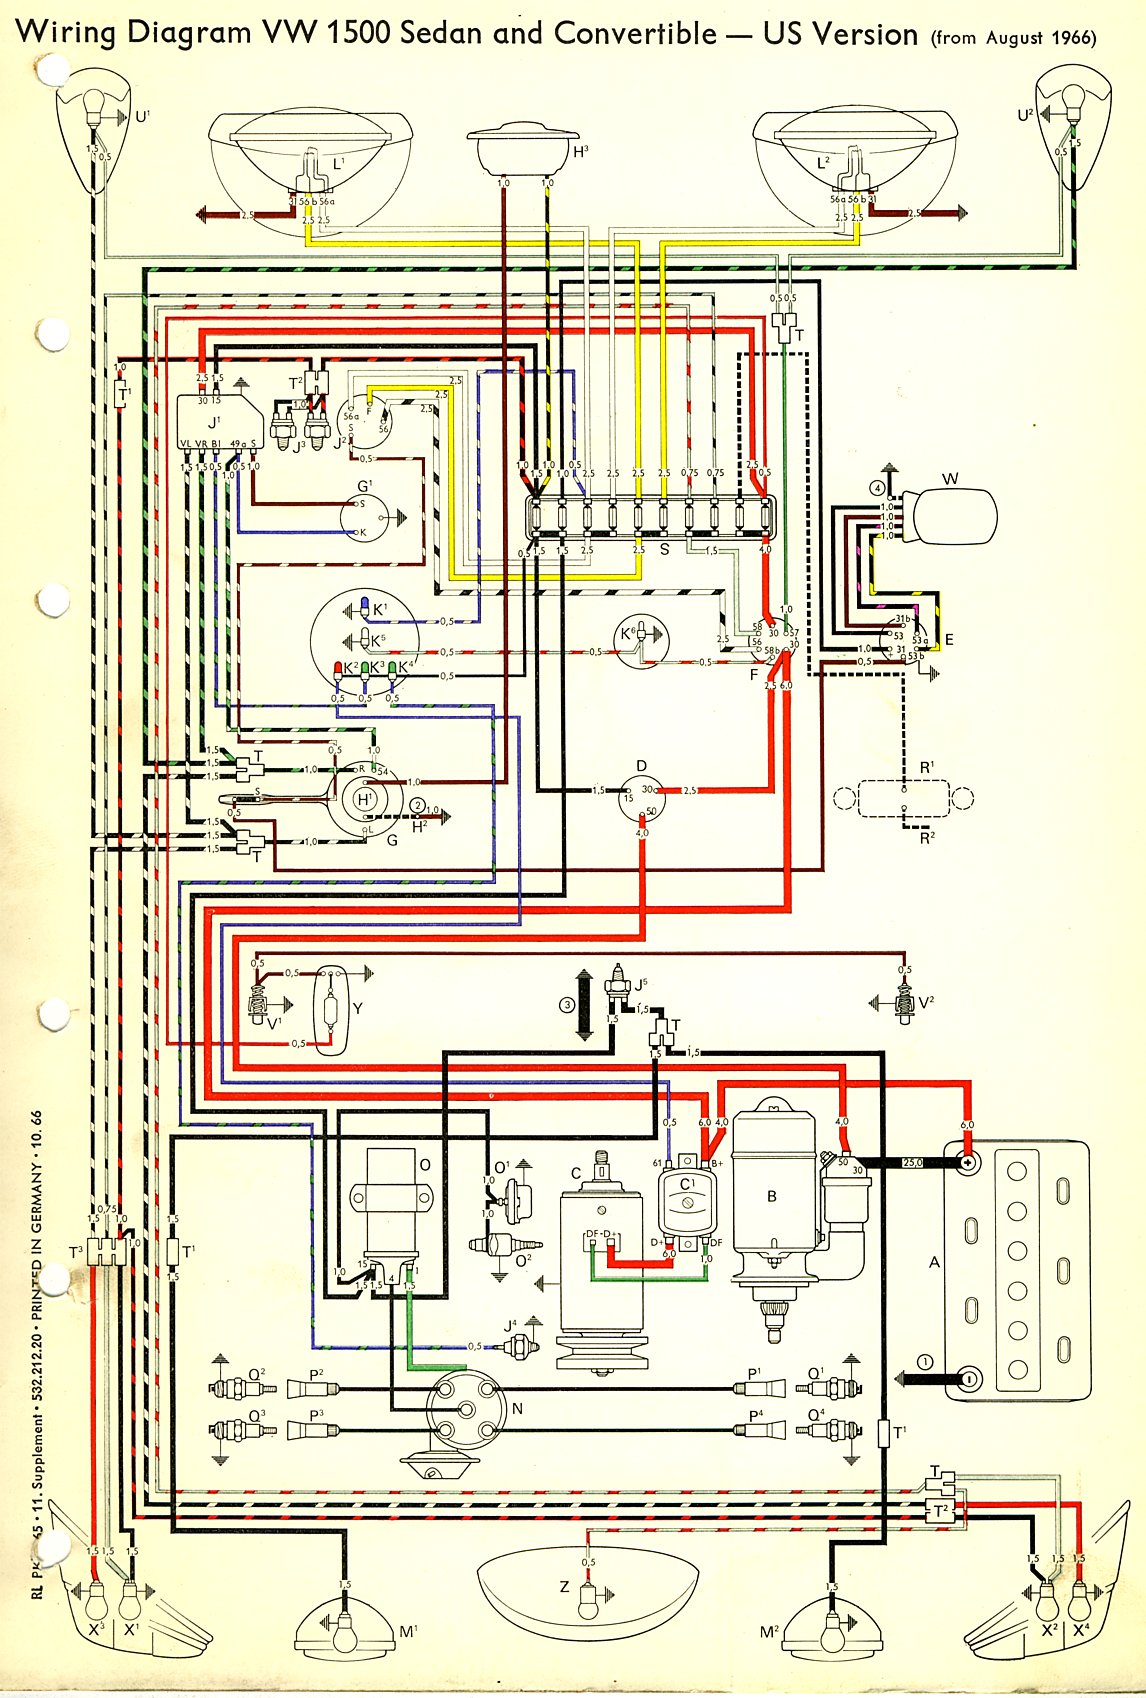 bug_67_USA thesamba com type 1 wiring diagrams beetle wiring diagram to fix a/c fan at n-0.co